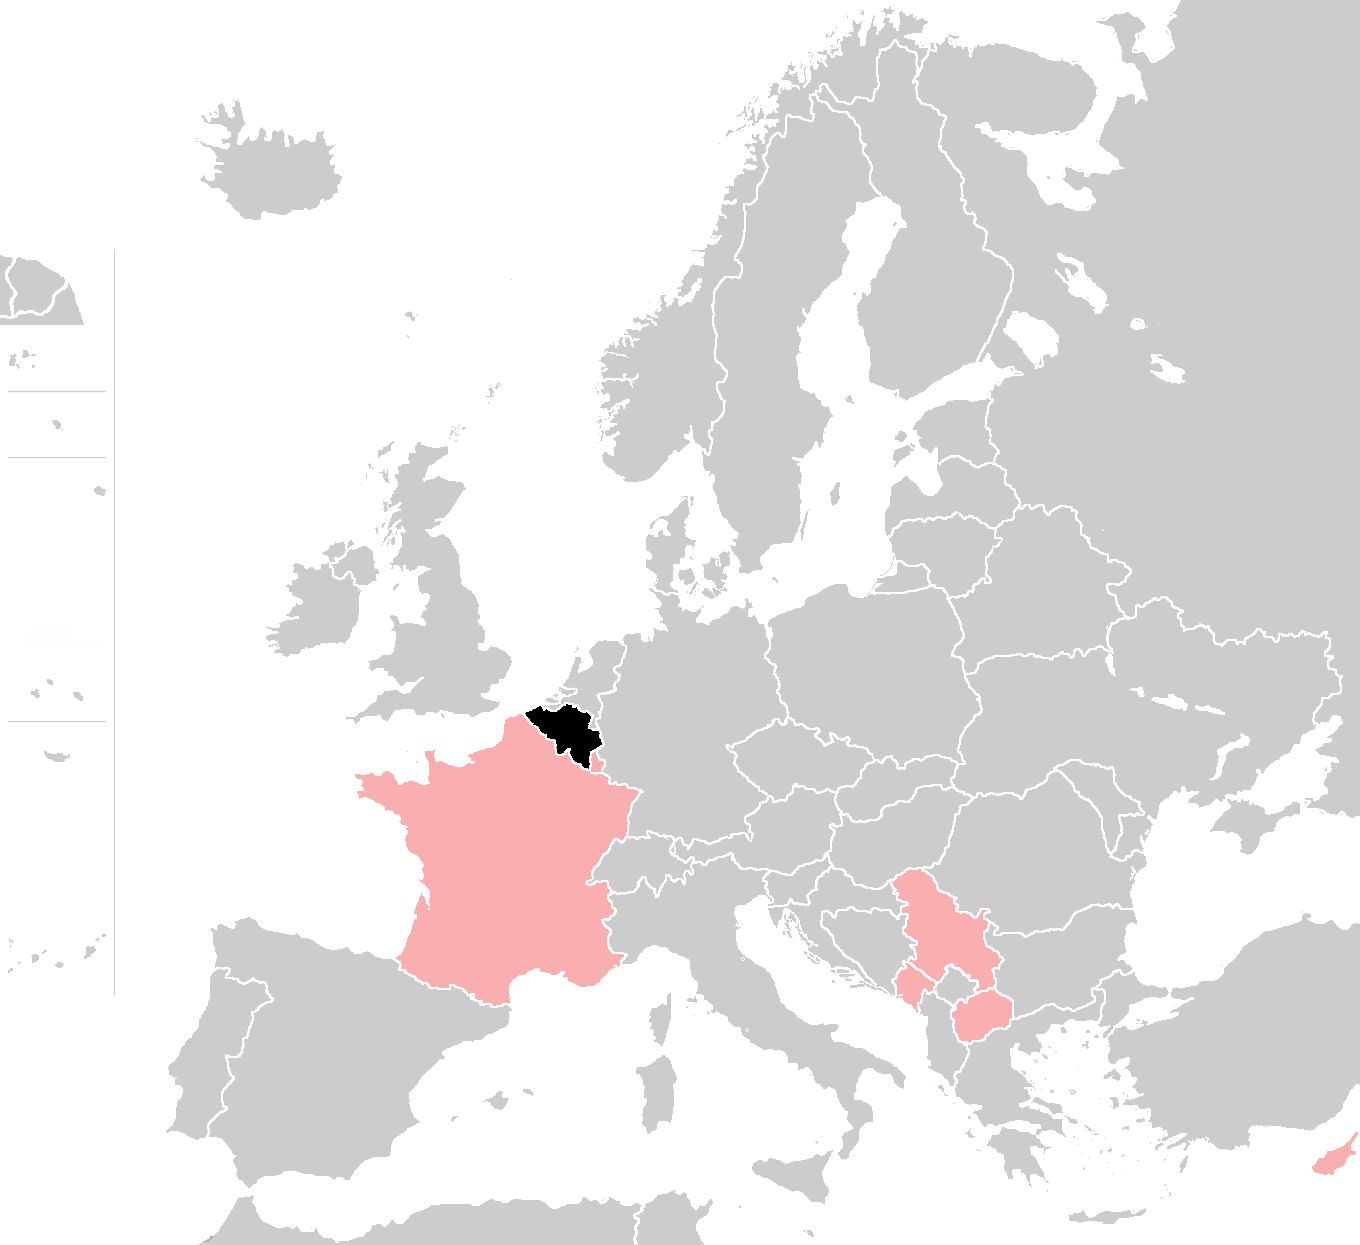 Map Of France Belgium And Luxembourg.File Map Of Europe With Belgium France Luxembourg Serbia Montenegro